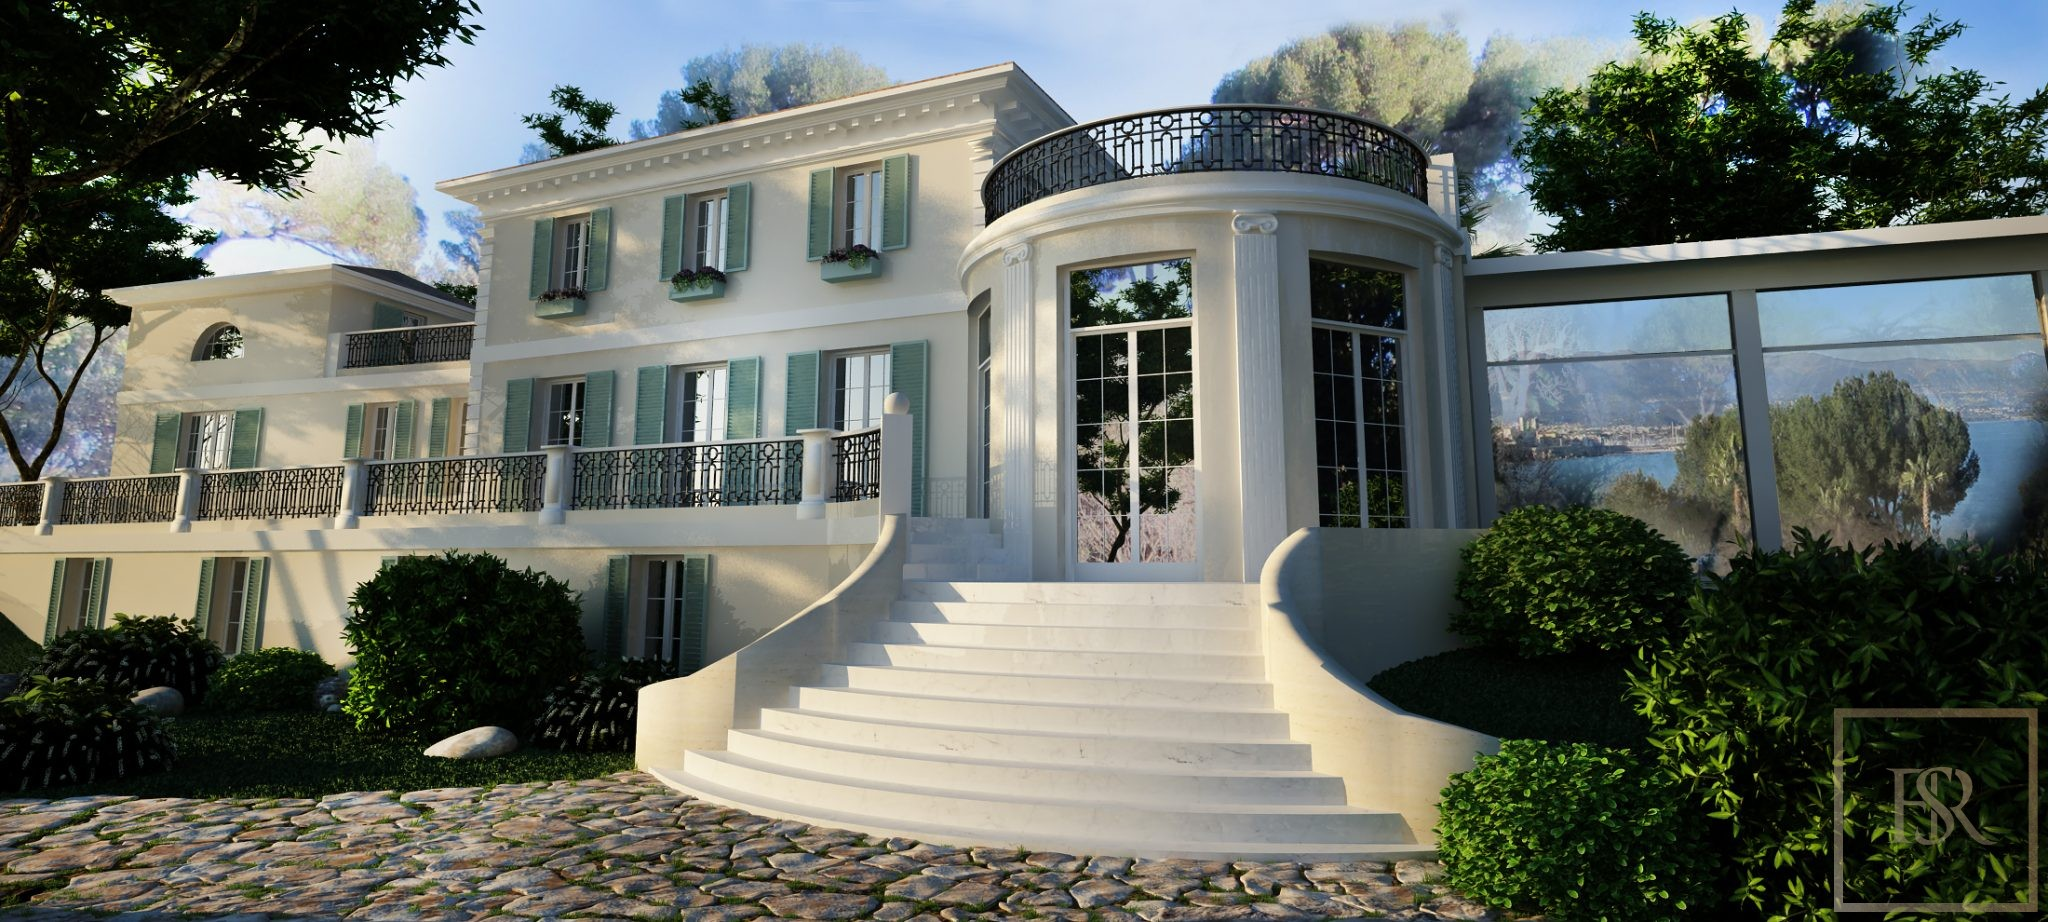 Villa Century - Cap d'Antibes, French Riviera for sale For Super Rich